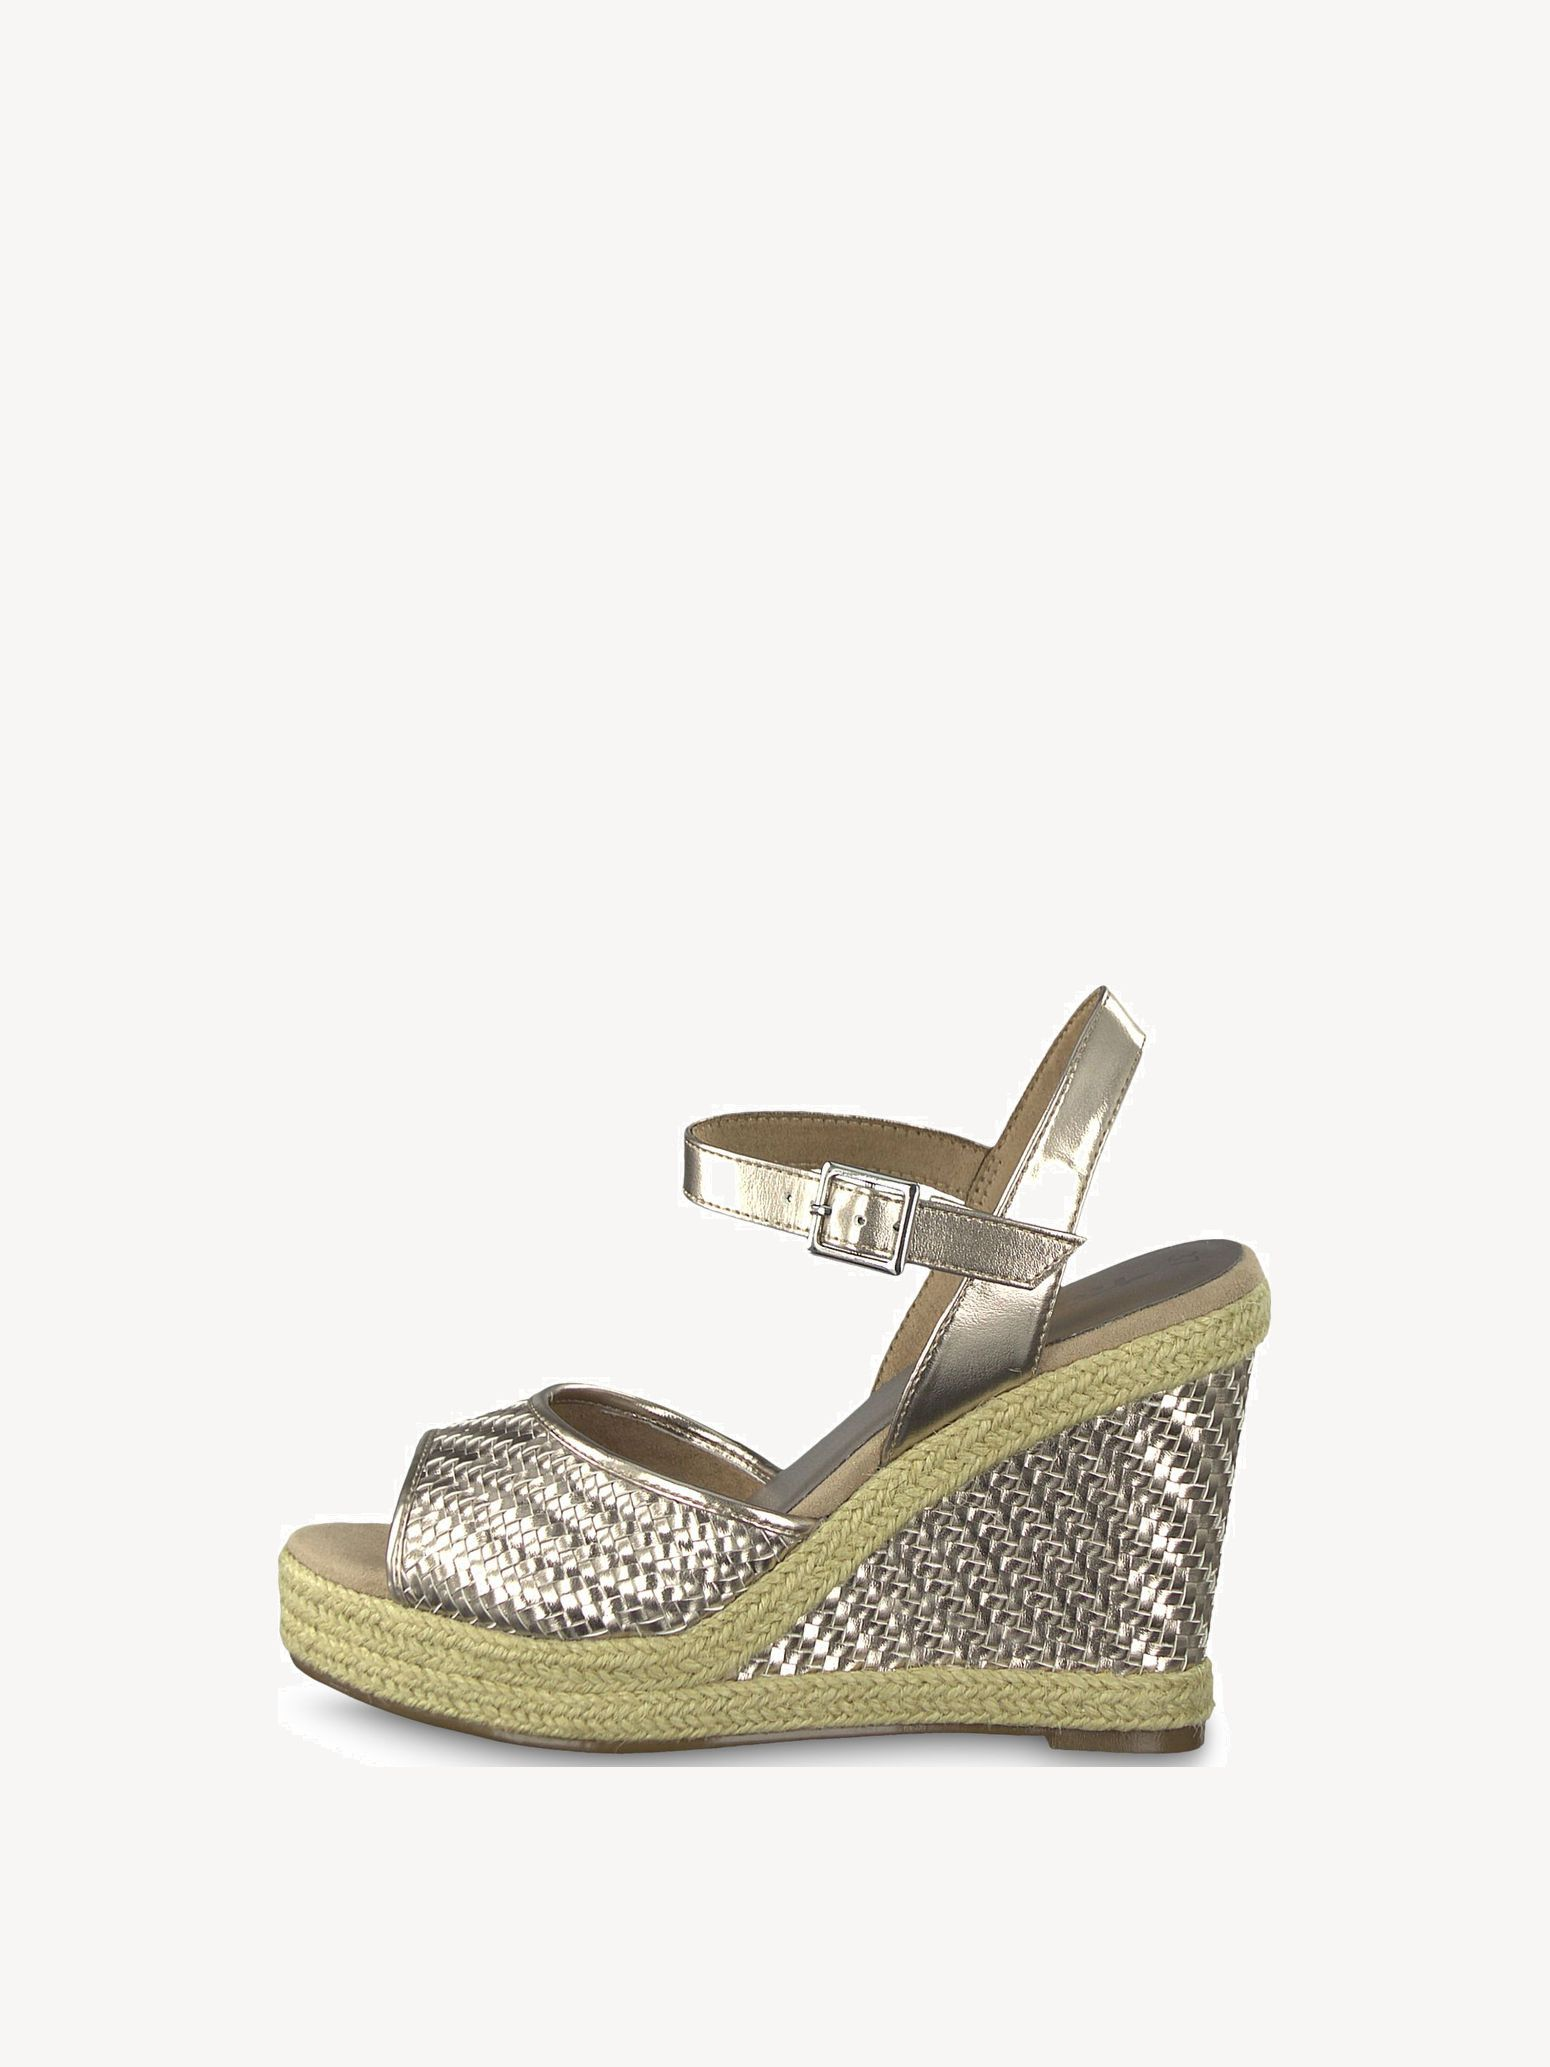 Sandal - metallic, COPPER, hi-res